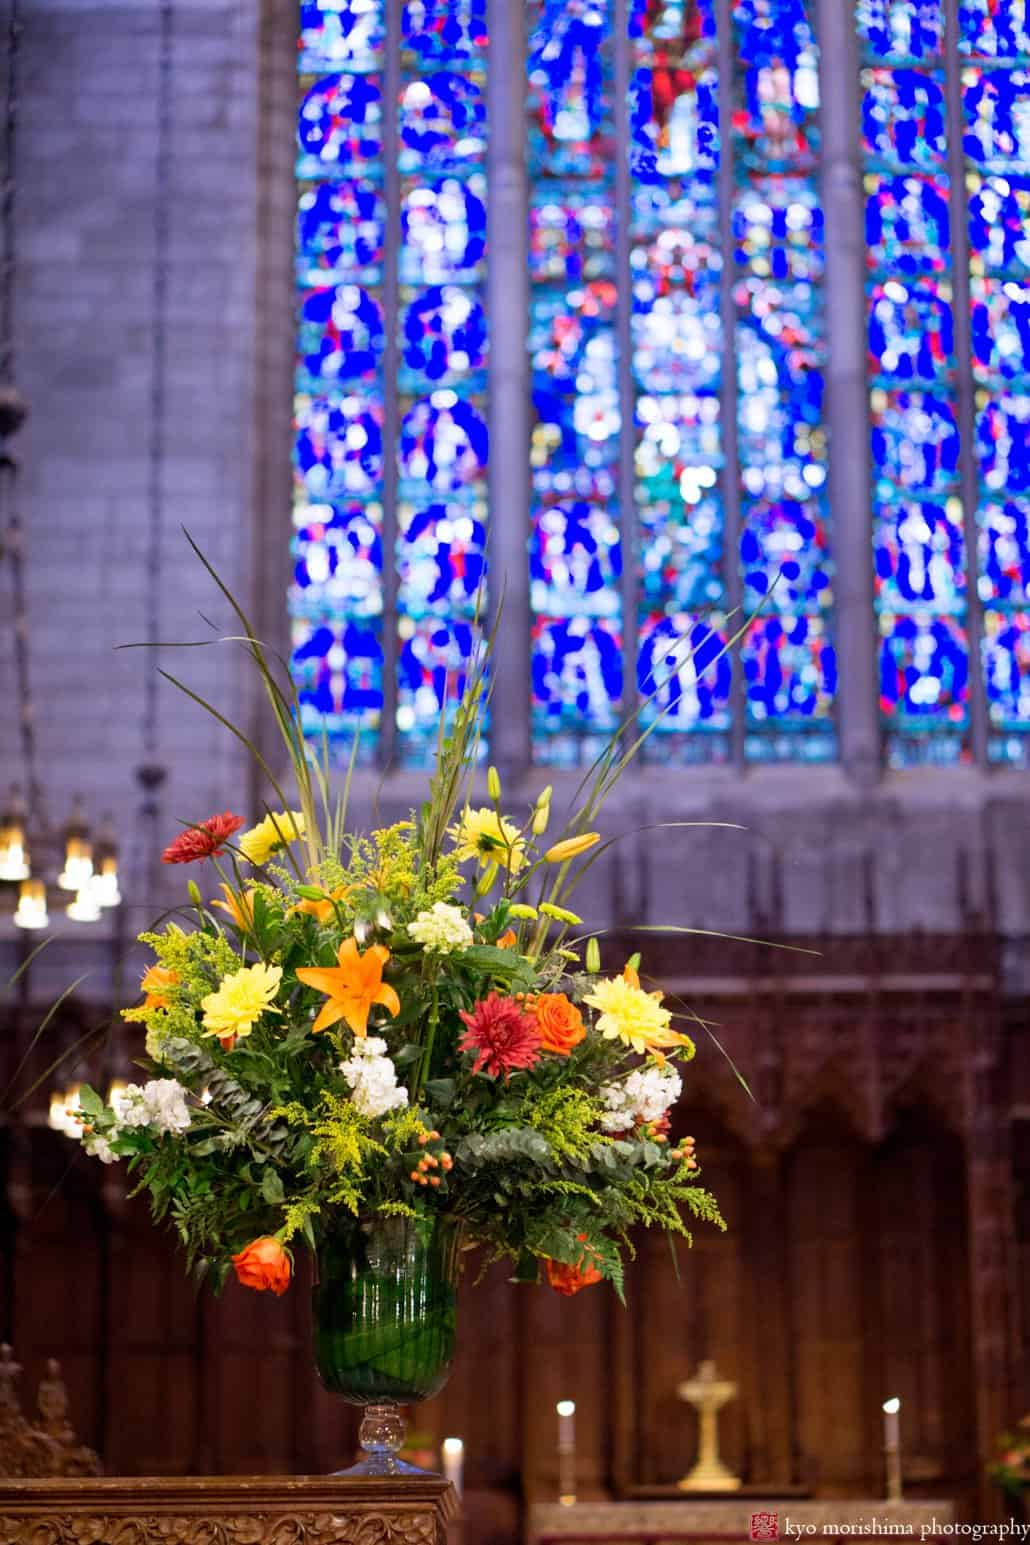 Colorful fall wedding flower bouquet by Monday Morning Flowers, photographed in Princeton University Chapel